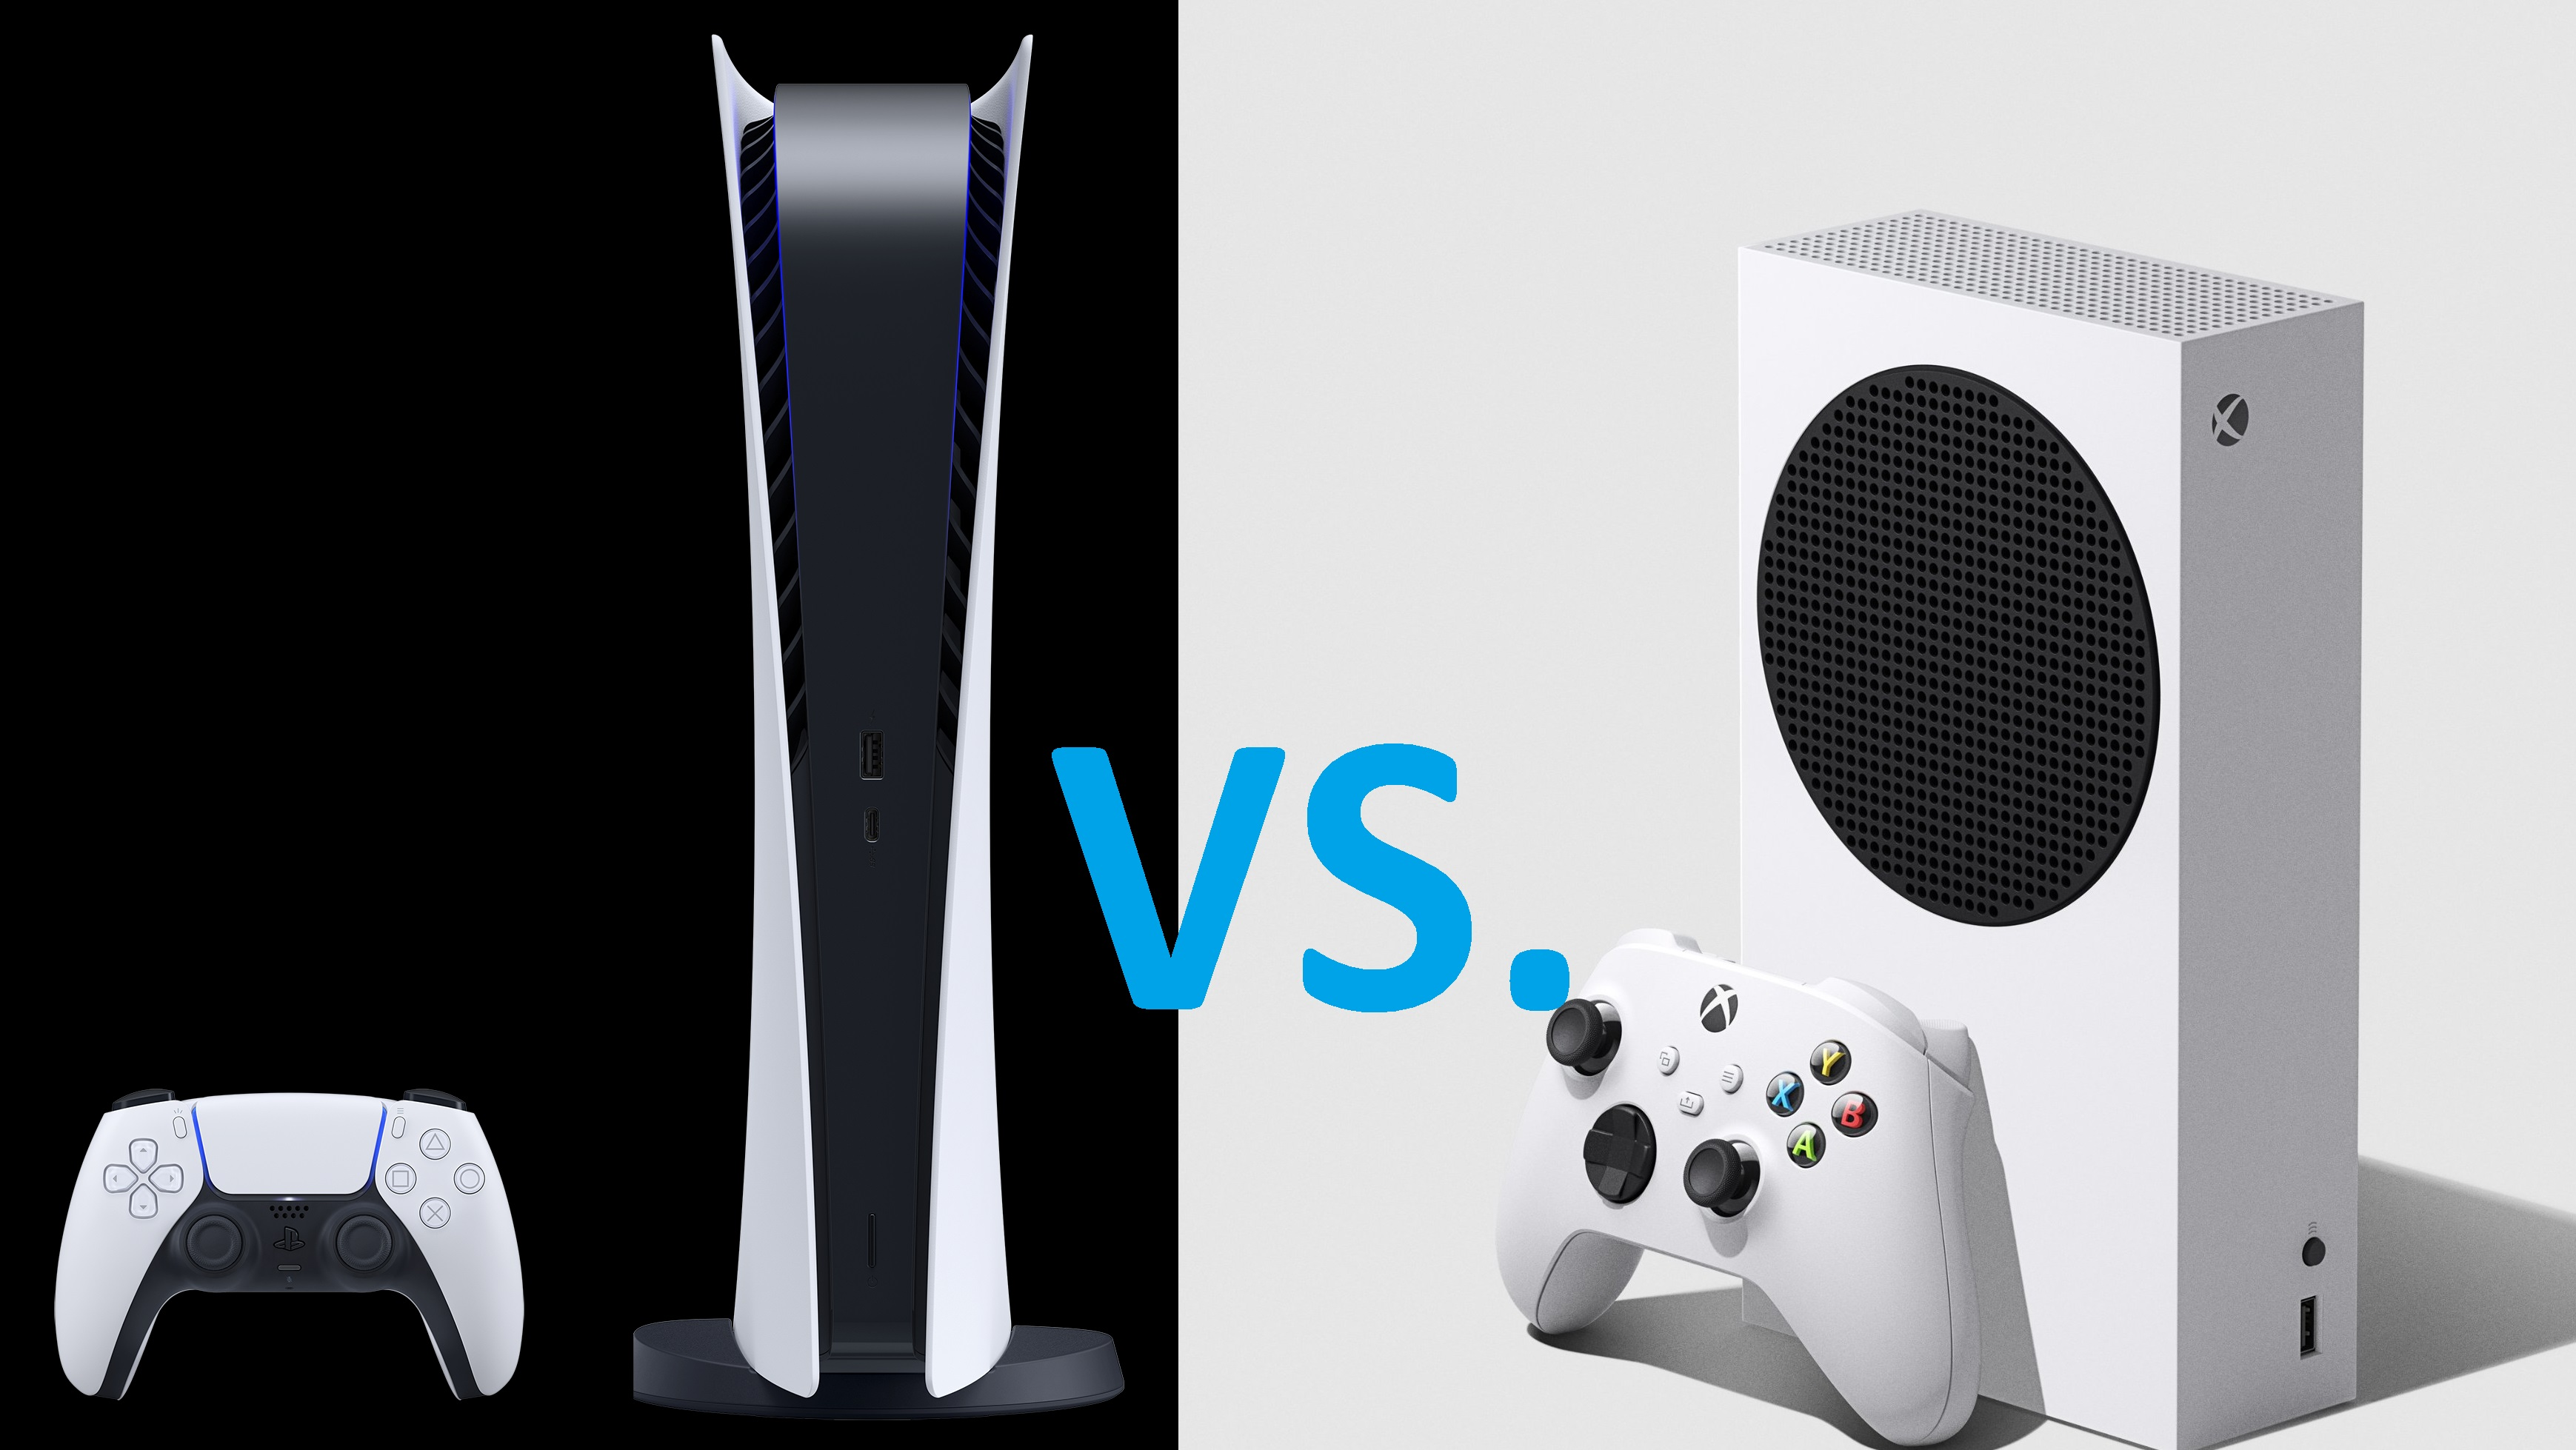 Ps5 Digital Edition Vs Xbox Series S Which One Should You Buy Laptop Mag